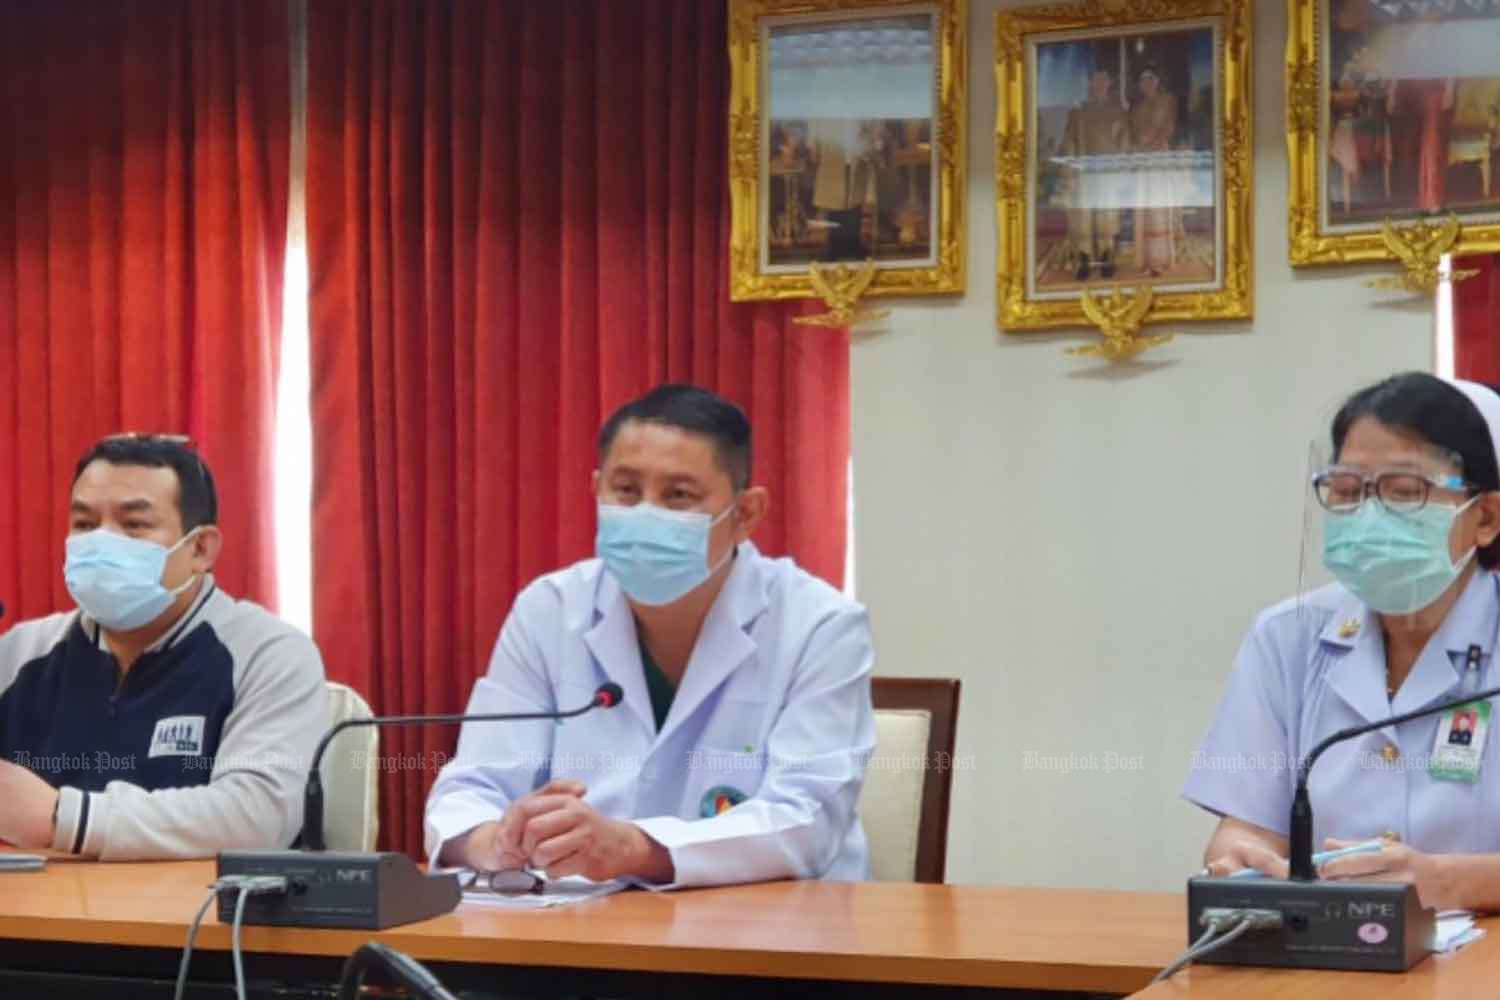 Dr Kampol Muangsaen, director of Veterans General Hospital, centre, holds a press conference on Tuesday, calling on protesters who gather at nearby Din Daeng intersection not to disrupt medical services at the hospital. (Photo: Wassana Nanuam)